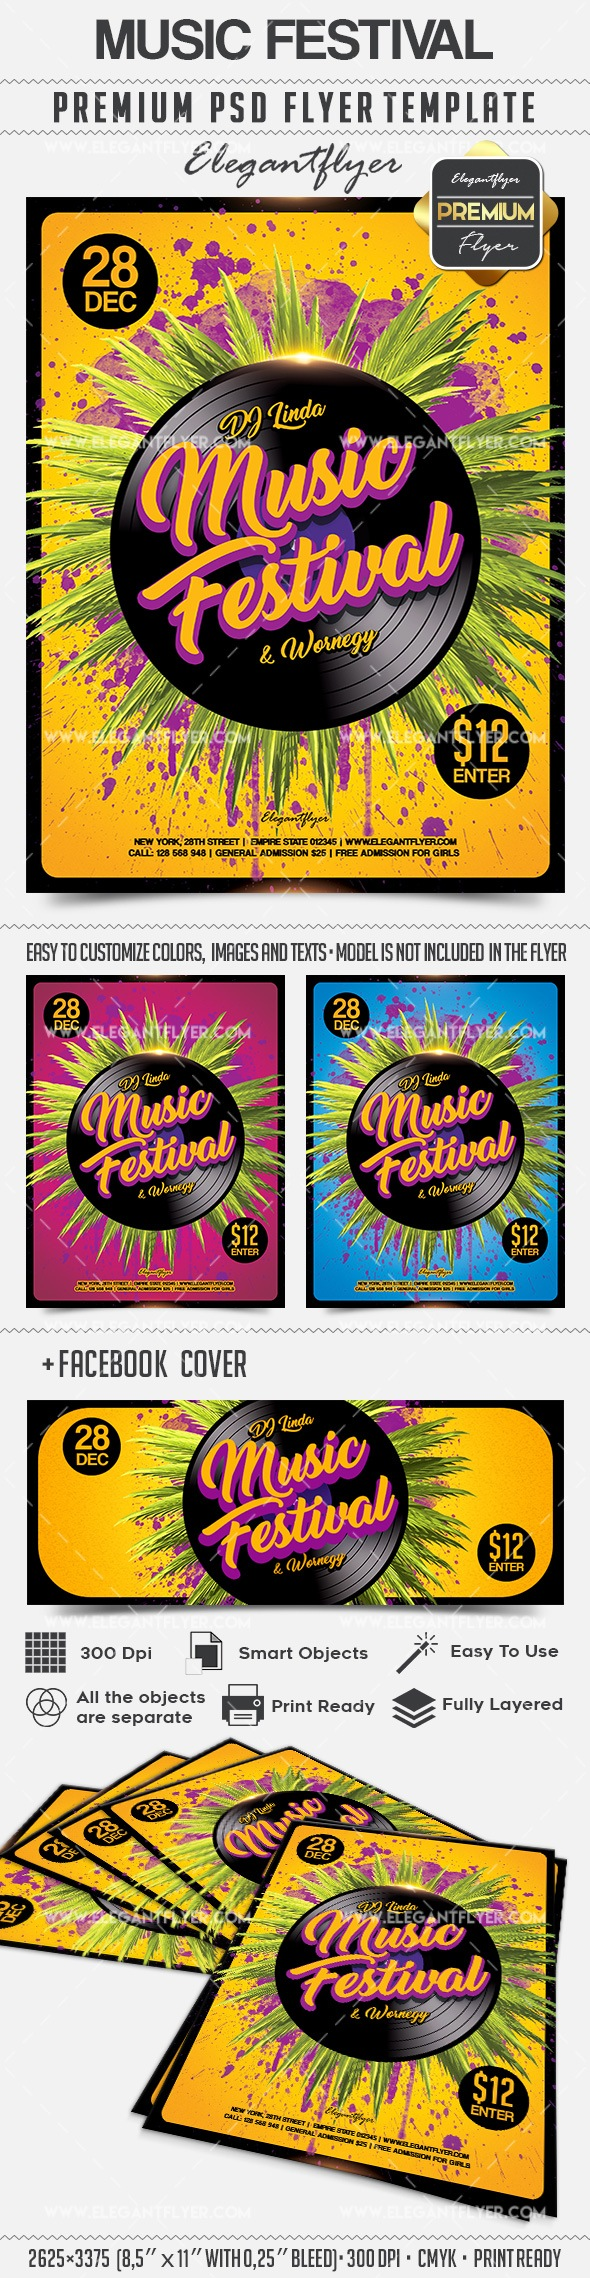 Poster for Music Festival Template